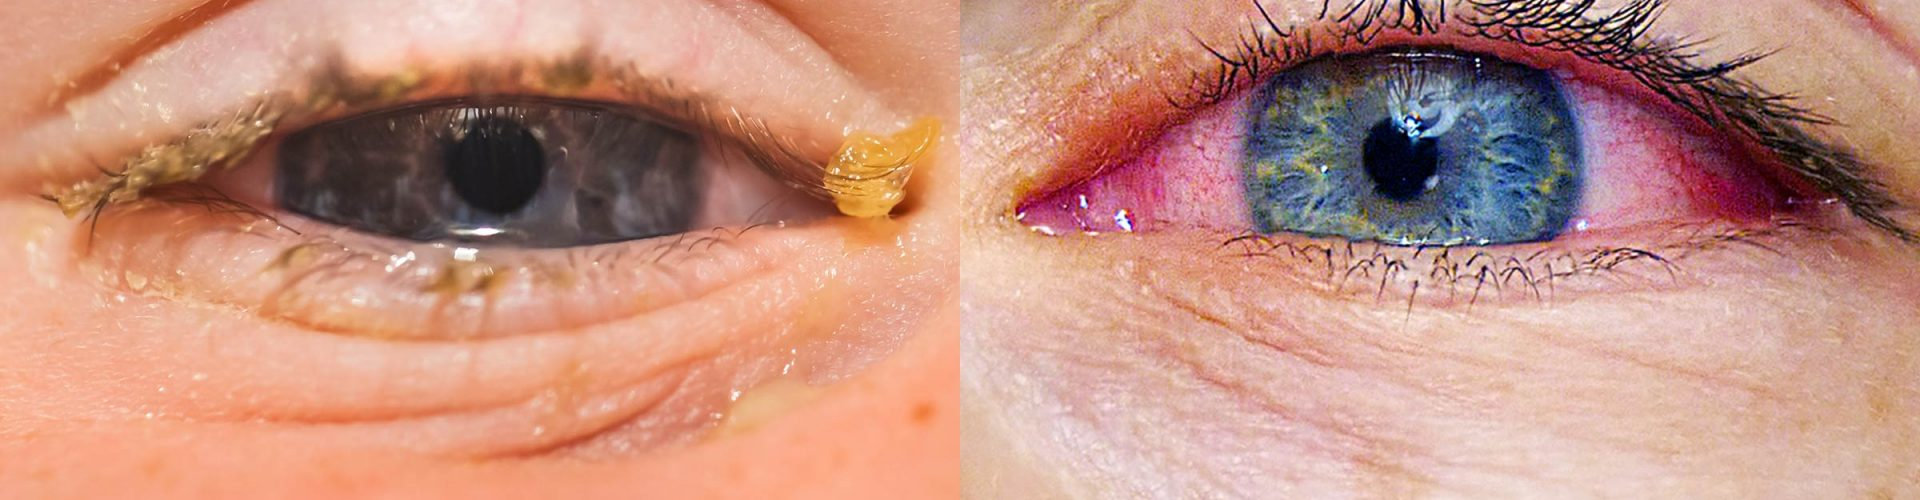 Allergies or Pink Eye: Here's How to Tell the Difference